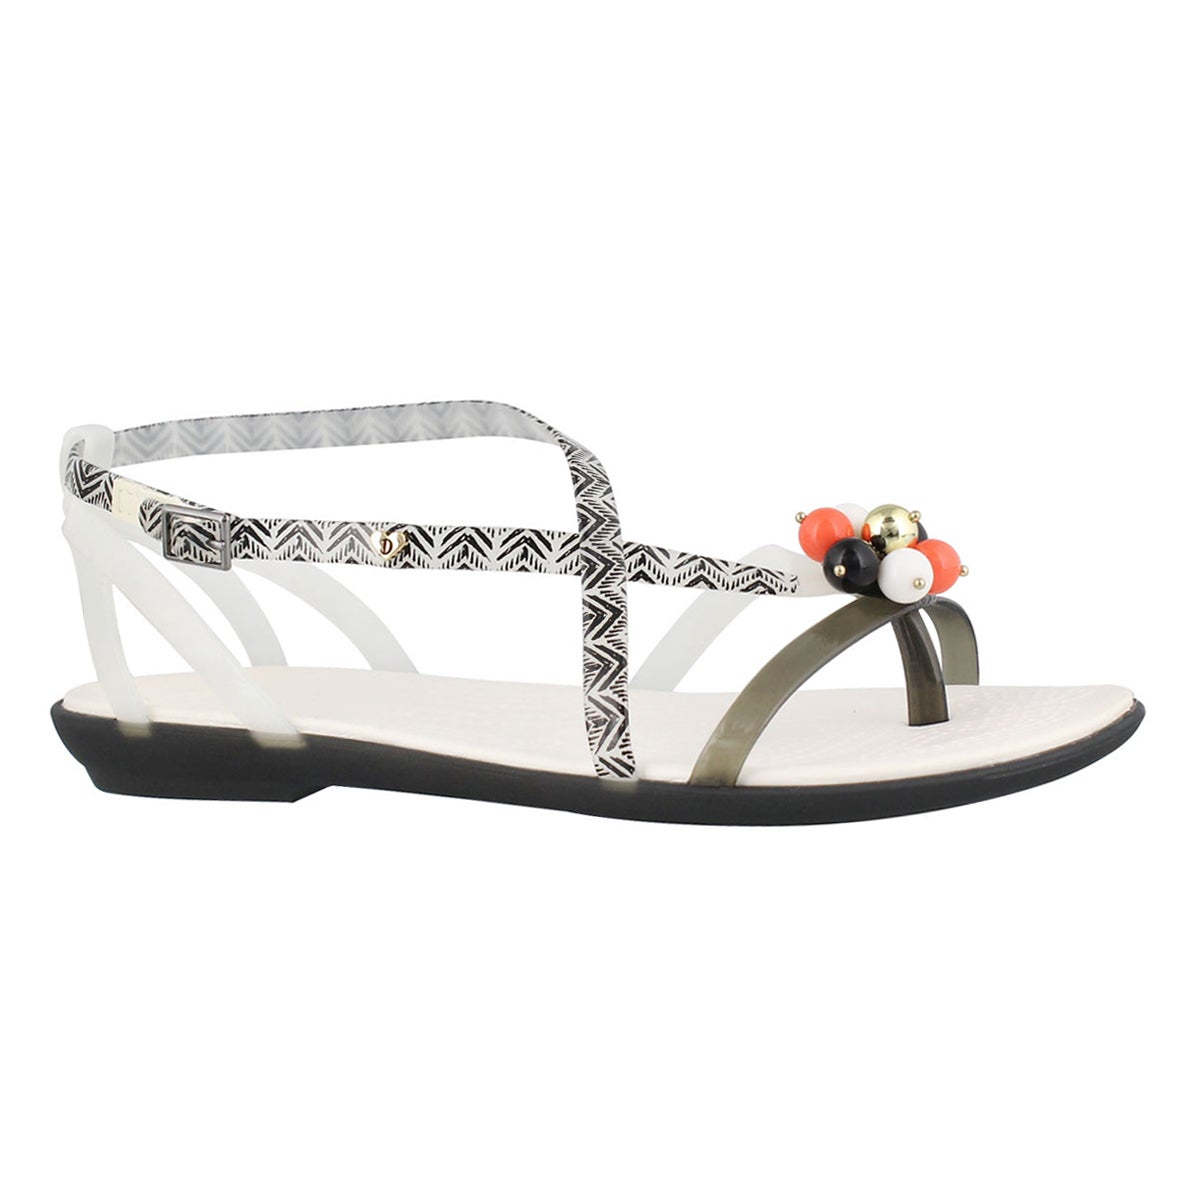 Women's DREW ISABELLA black/white sandals